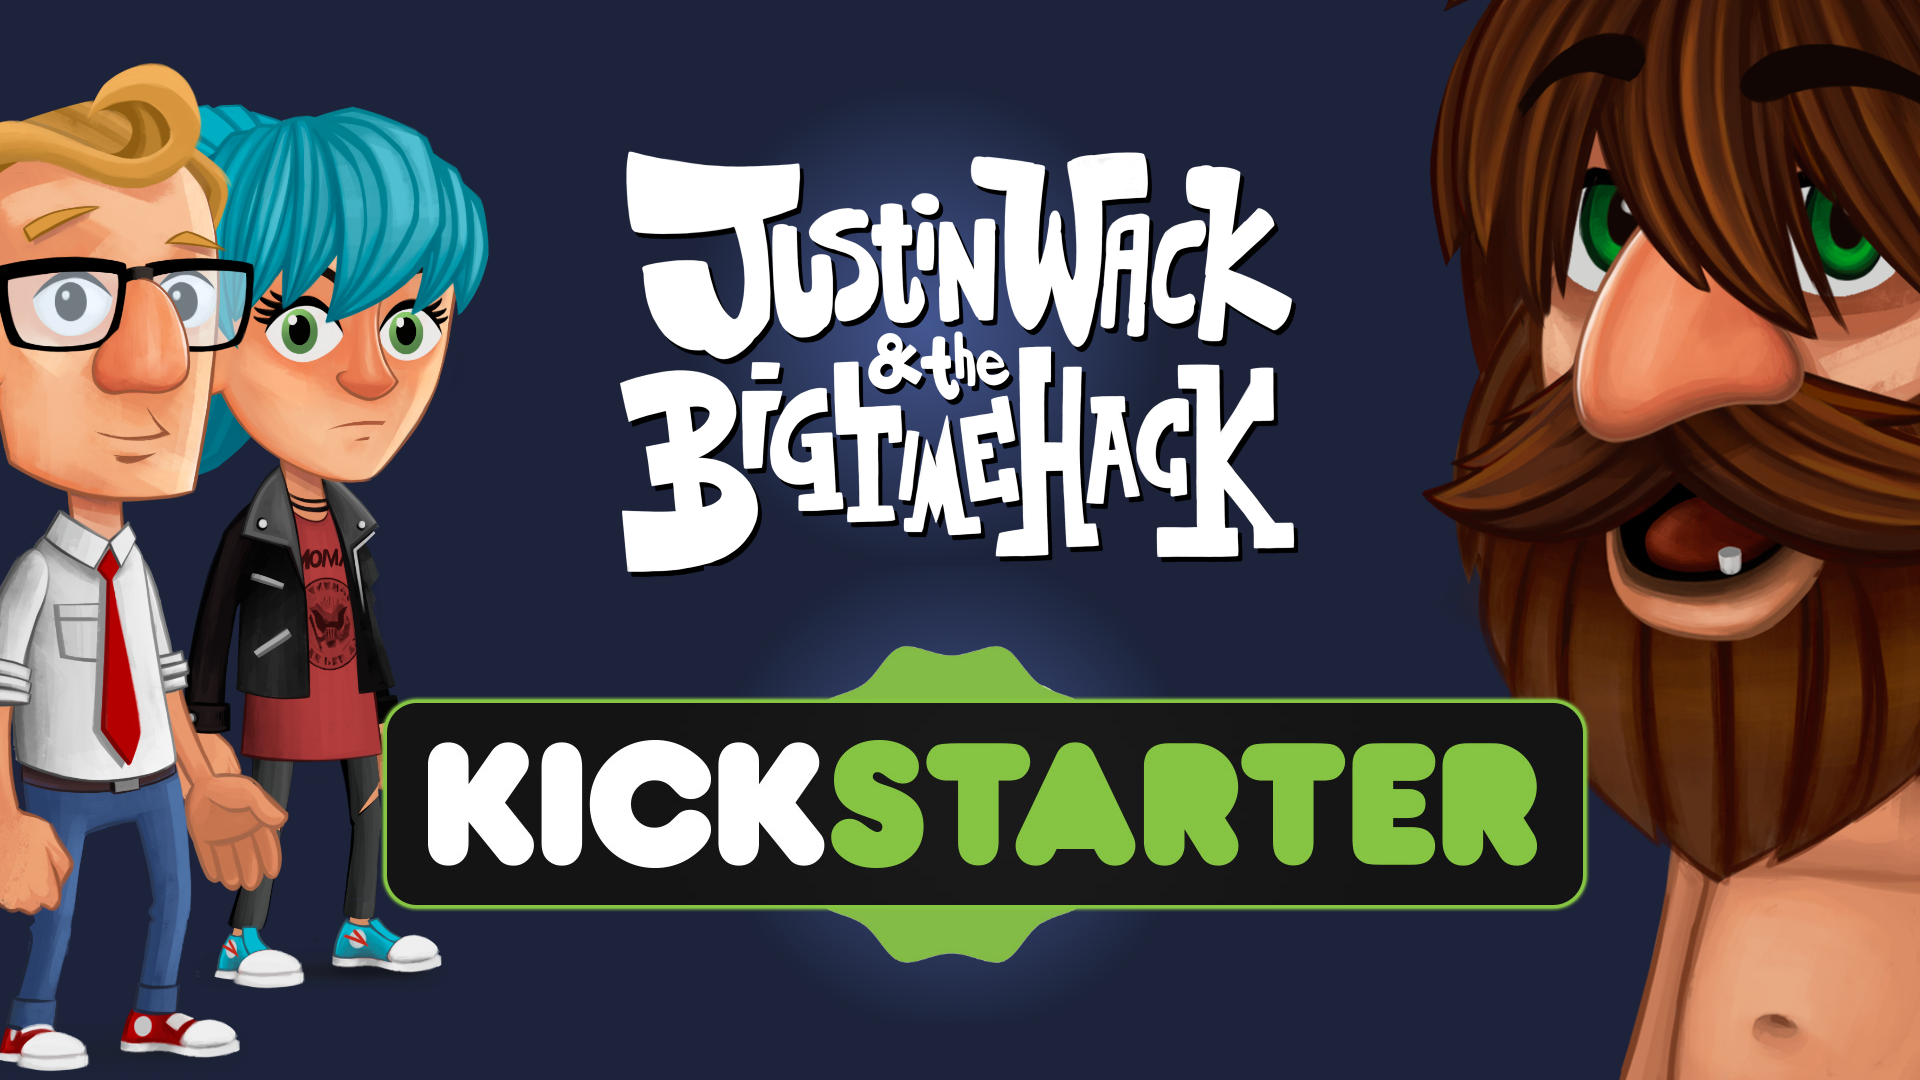 Justin Wack and the Big Time Hack (Demo)